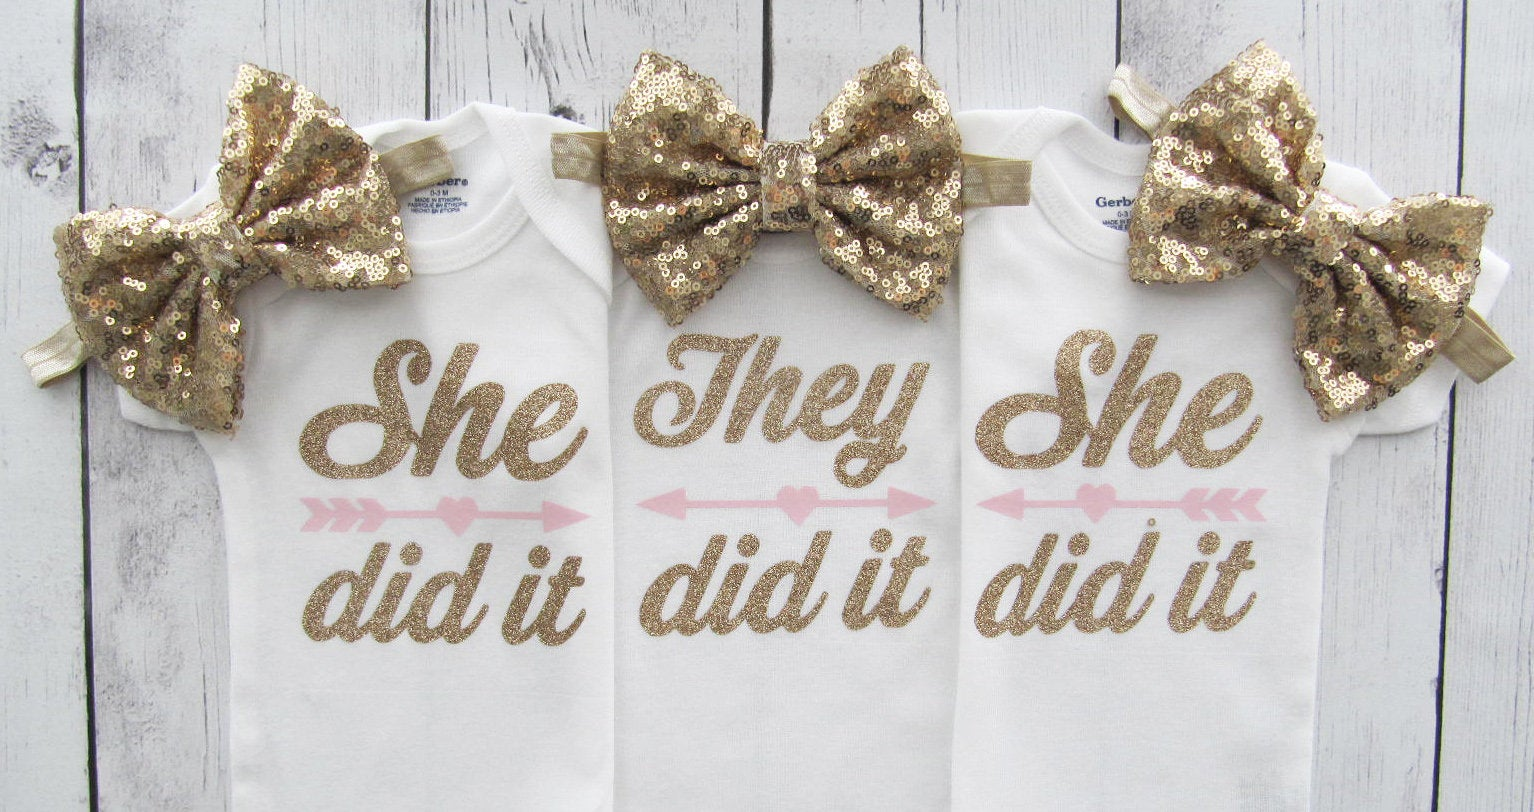 Triplet Baby Shower Gift - She did it, She did it, They did it, triplet baby gift, girl triplets, pink gold, triplet photoshoot